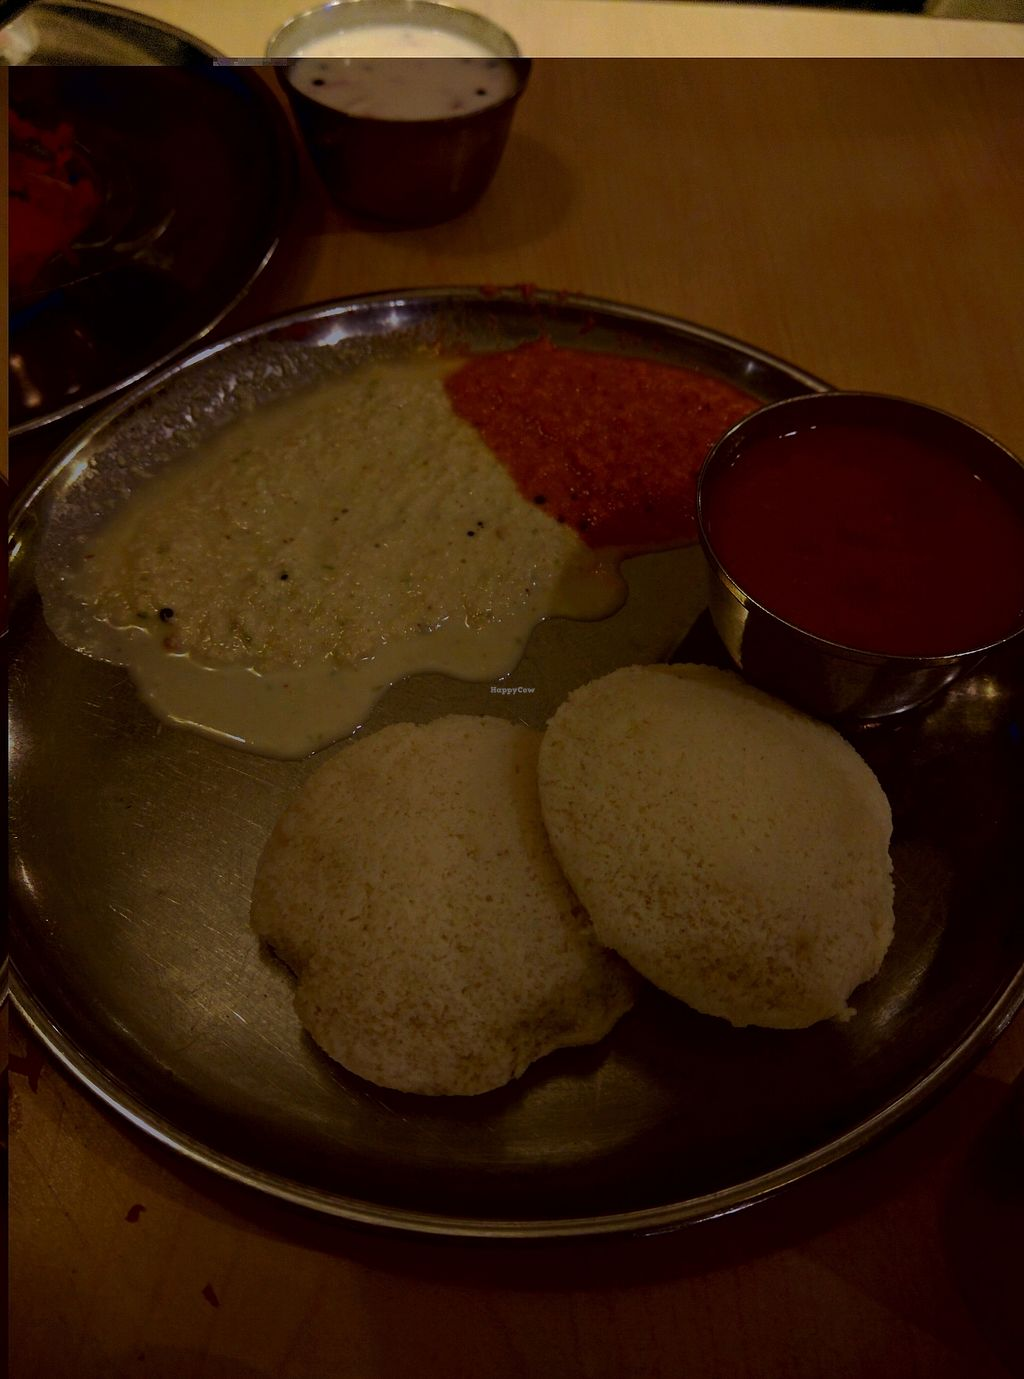 """Photo of Woodlands  by <a href=""""/members/profile/Summer_Tan"""">Summer_Tan</a> <br/>Idly - RM2.50 Steamed rice and lentil patties served with chutney and sambar The patties just melts in your mouth, nice and fluffy. The sauces are coconut and spicy sambar which are well balanced <br/> January 29, 2018  - <a href='/contact/abuse/image/141/352503'>Report</a>"""